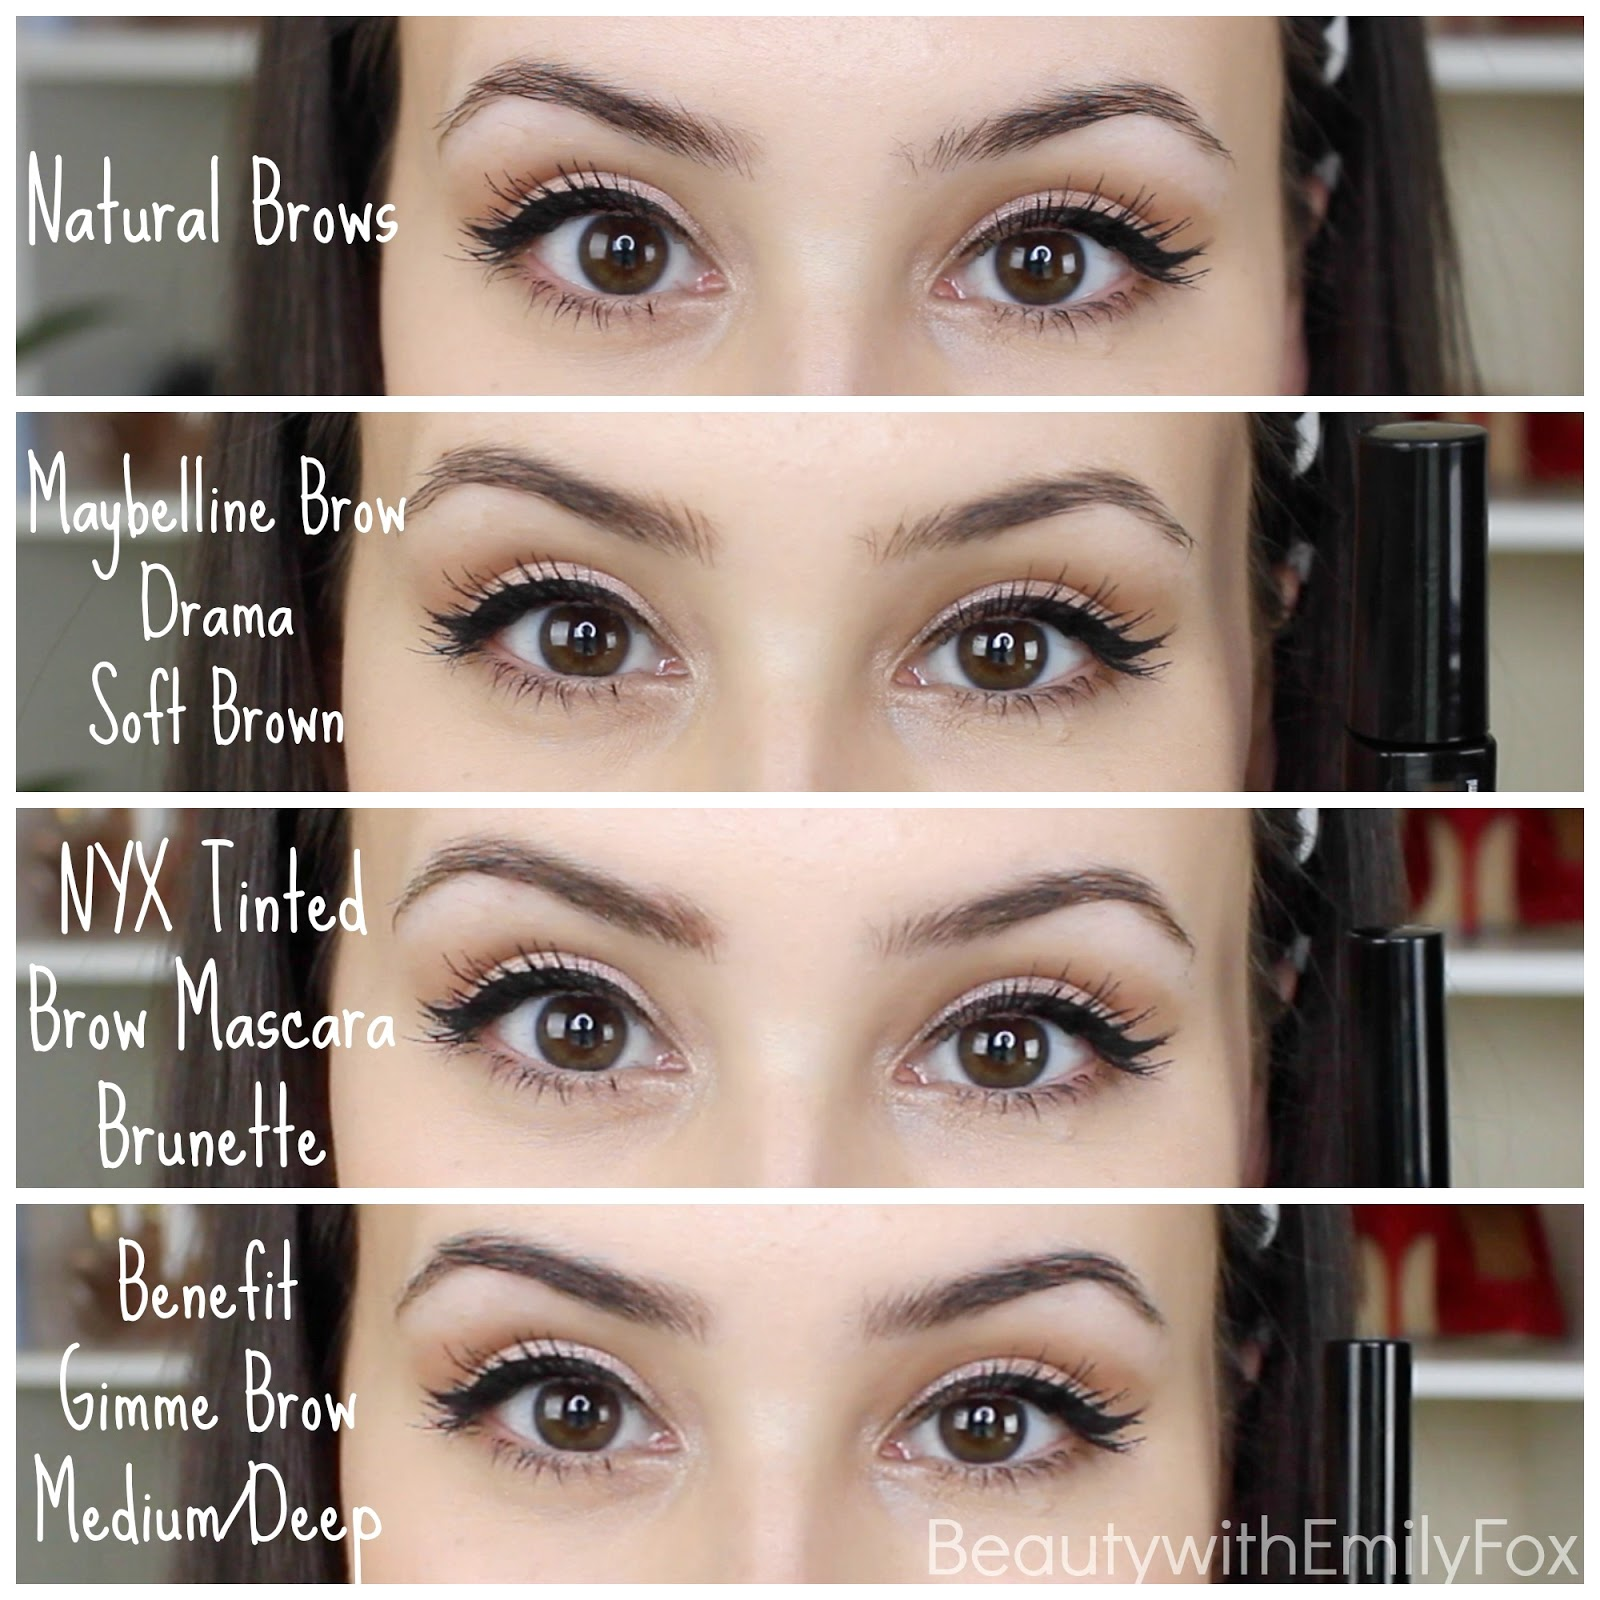 Beautywithemilyfox Best Tinted Brow Gel Nyx Maybelline Or Benefit